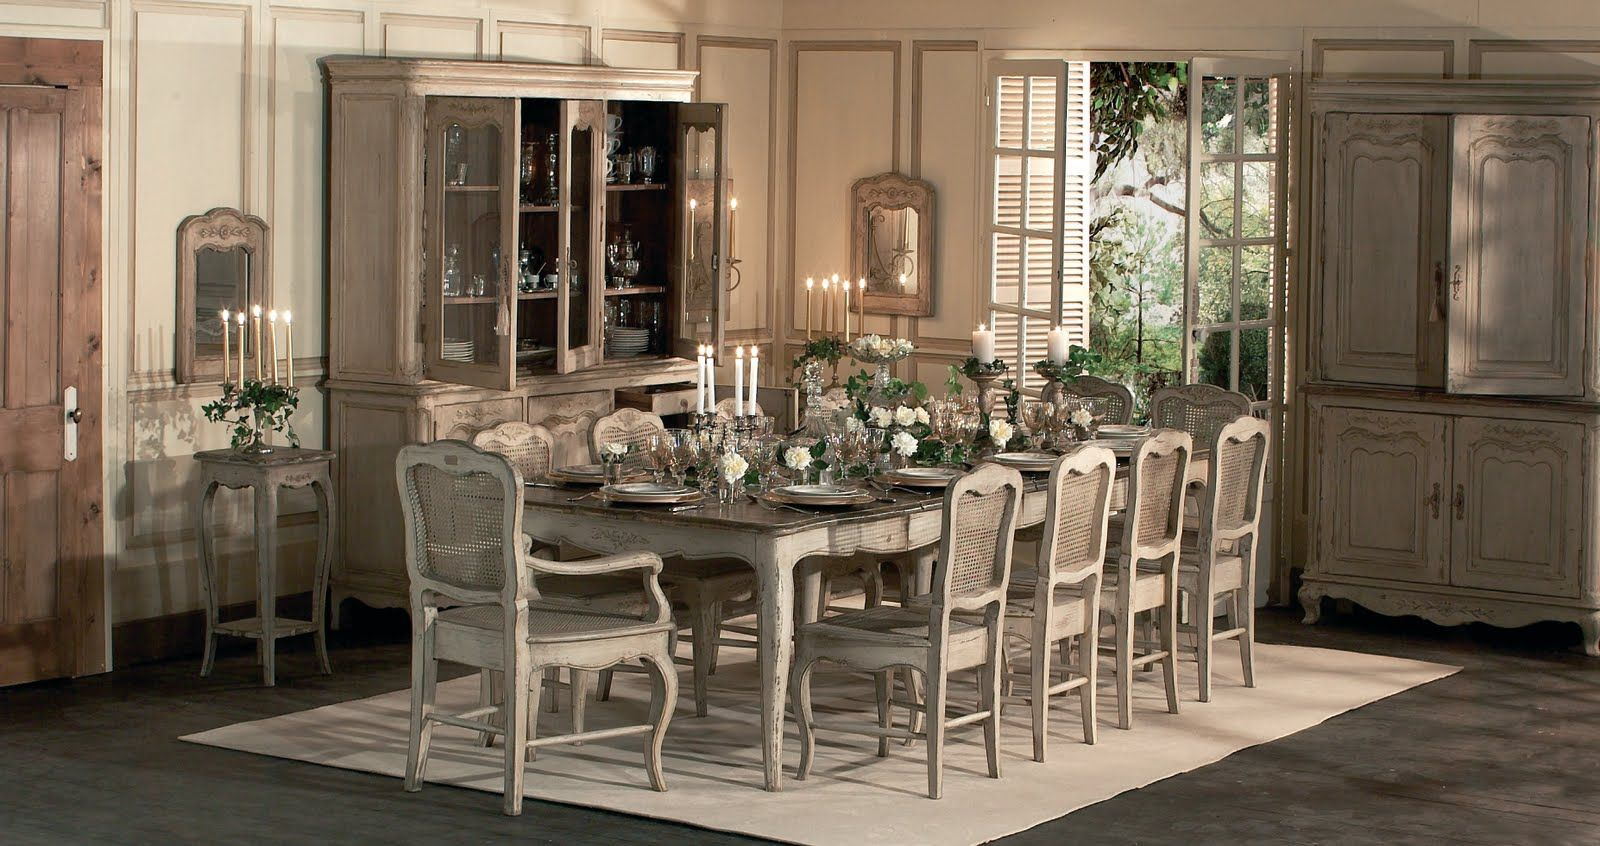 Captivating Country Dining Room Designs To Inspire You: Luxury French  Country Dining Room Design With